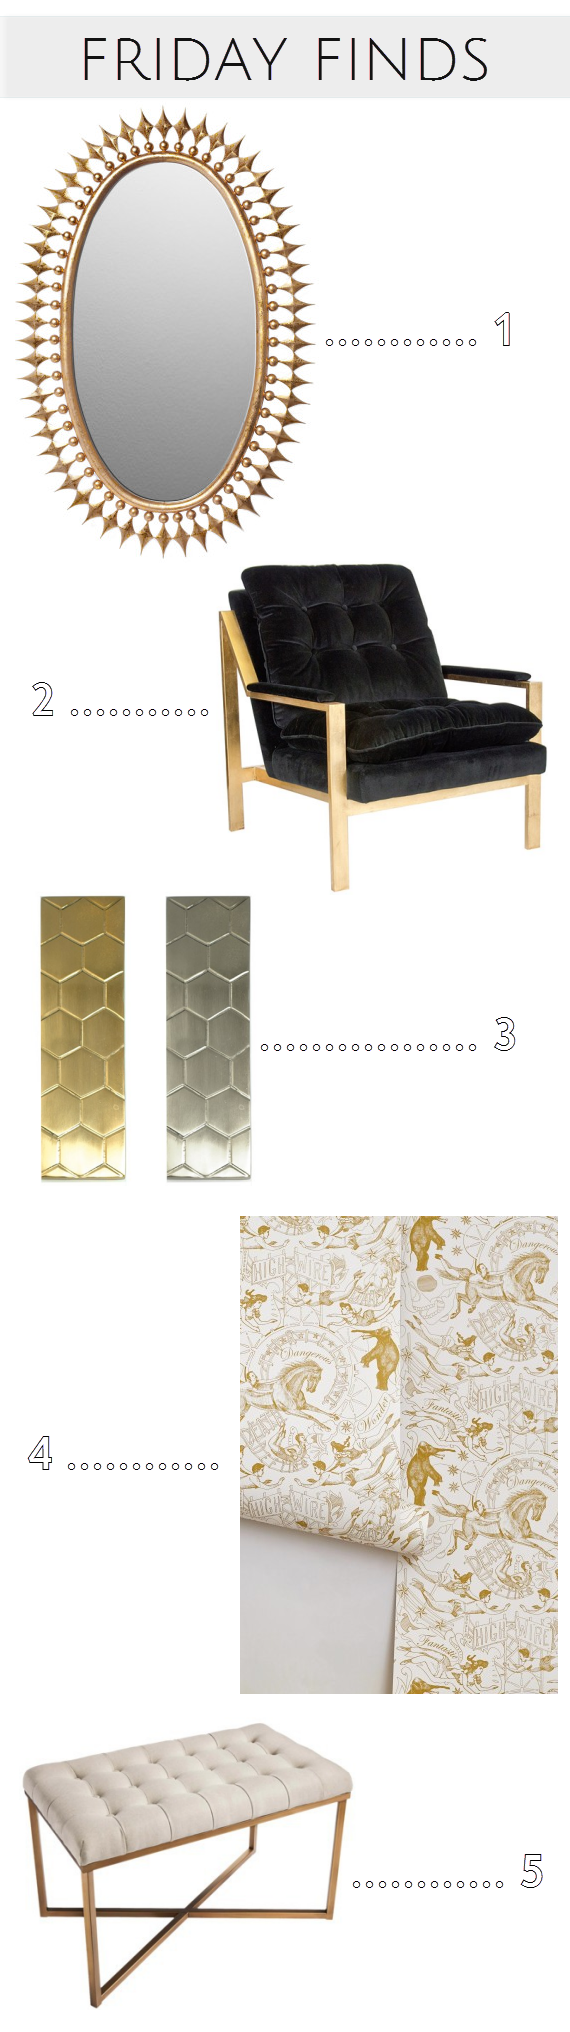 stylish home decor finds - simplified bee